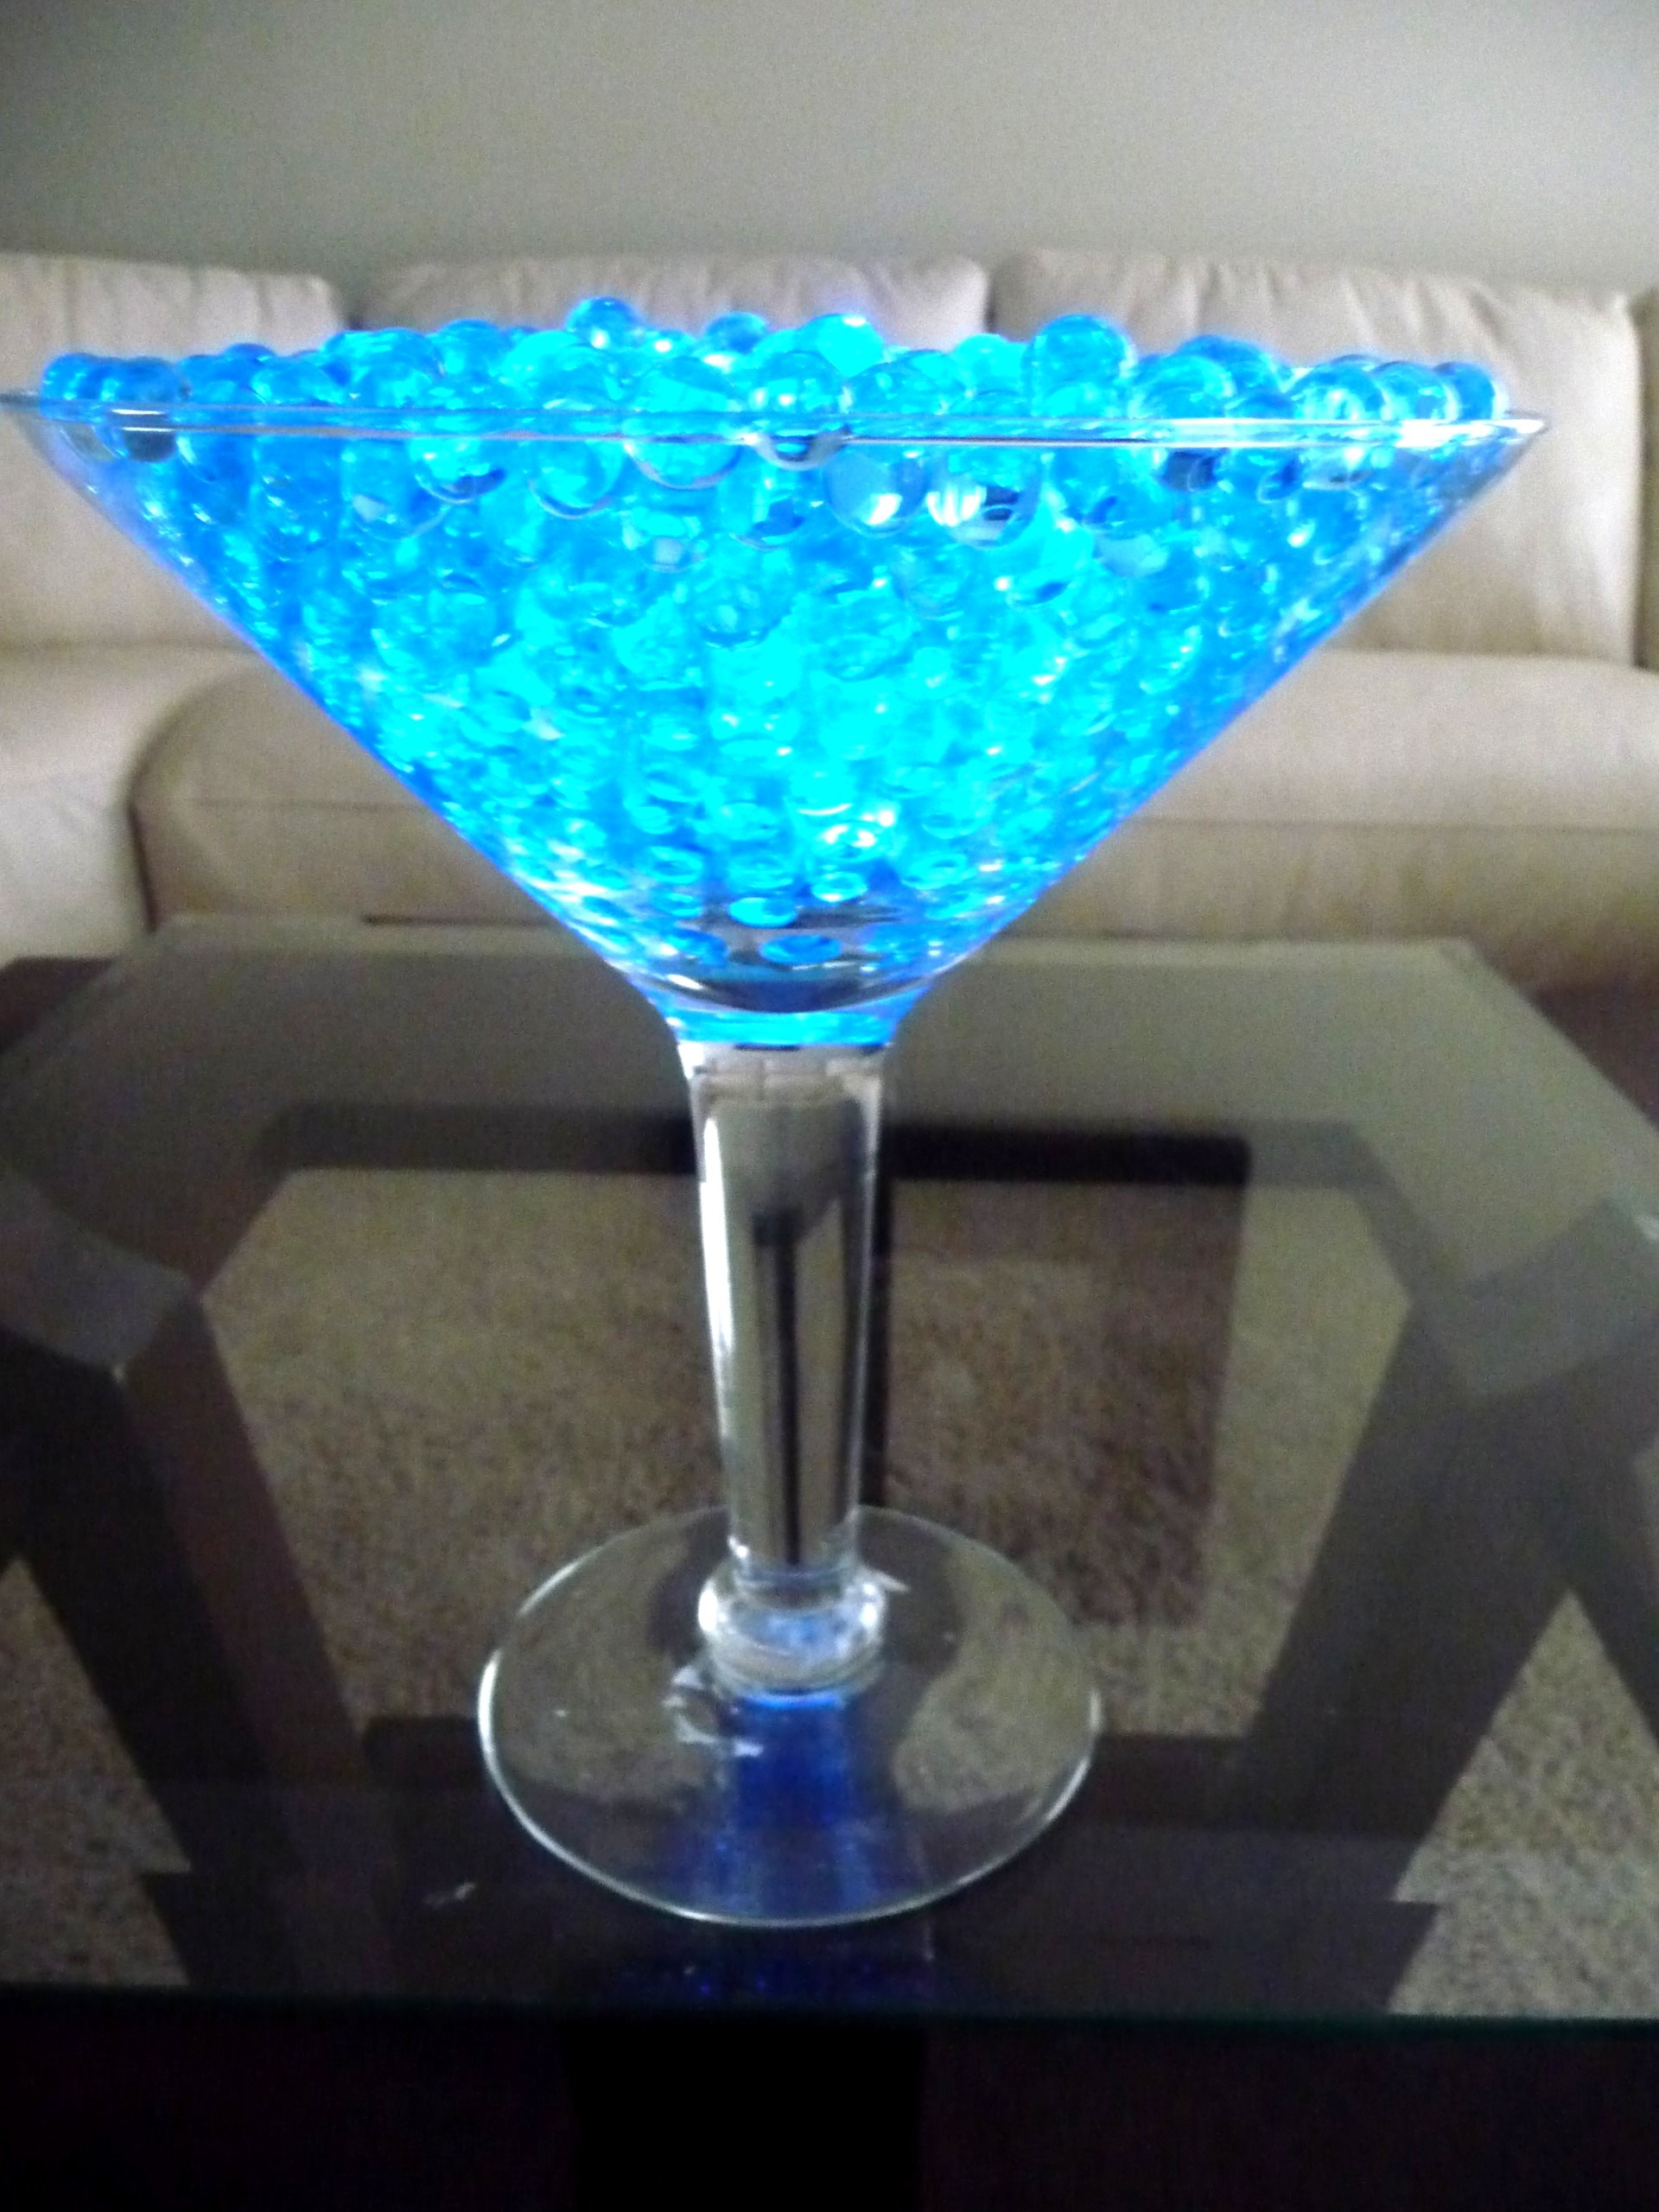 Grande Martini Glasses With Teal Acrylic Beading And LED Light Inexpensive And Flashyvendors